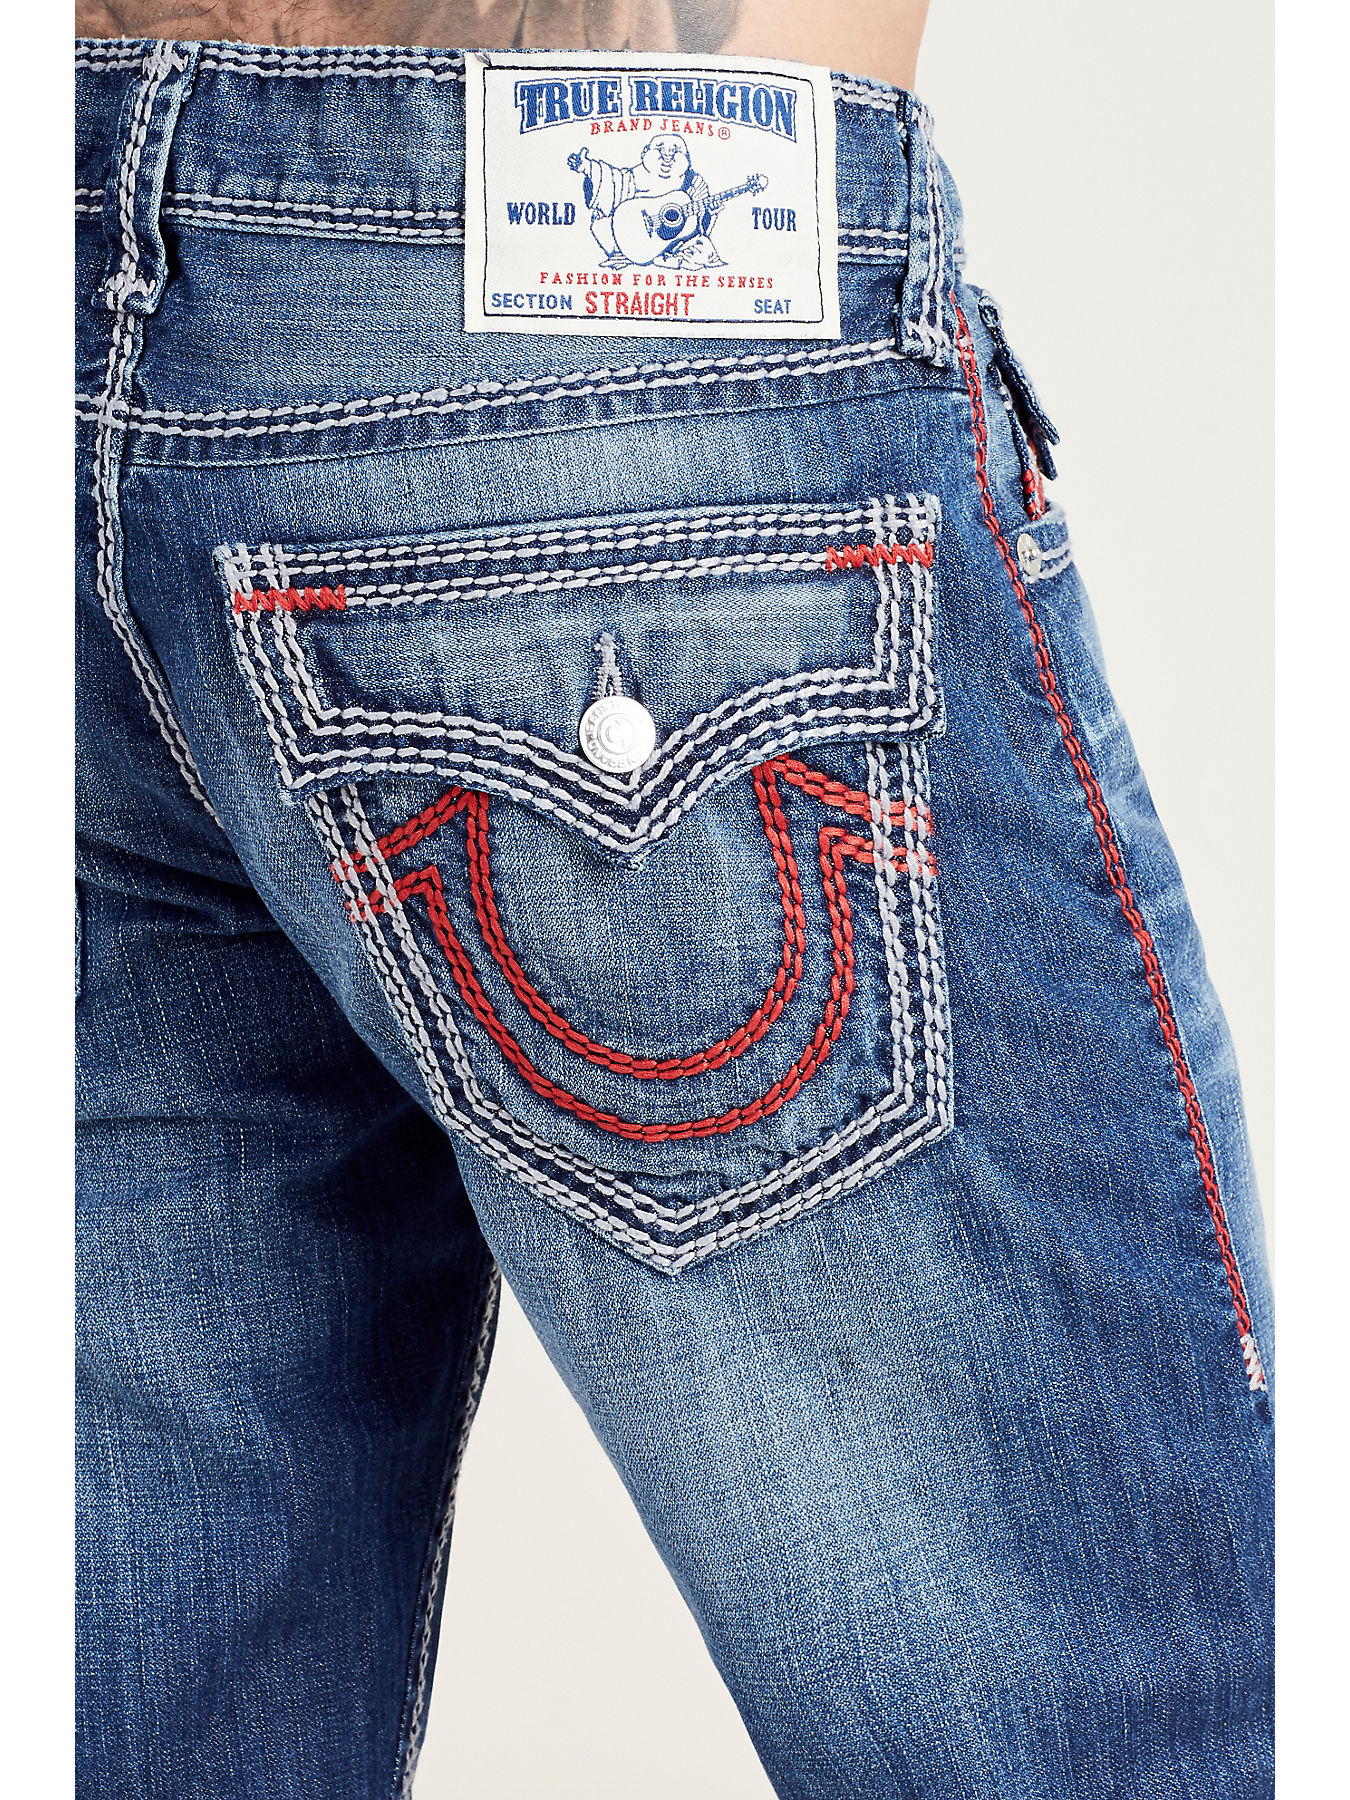 1317a843a STRAIGHT FLAP RED MEGA T STITCH MENS JEAN - True Religion